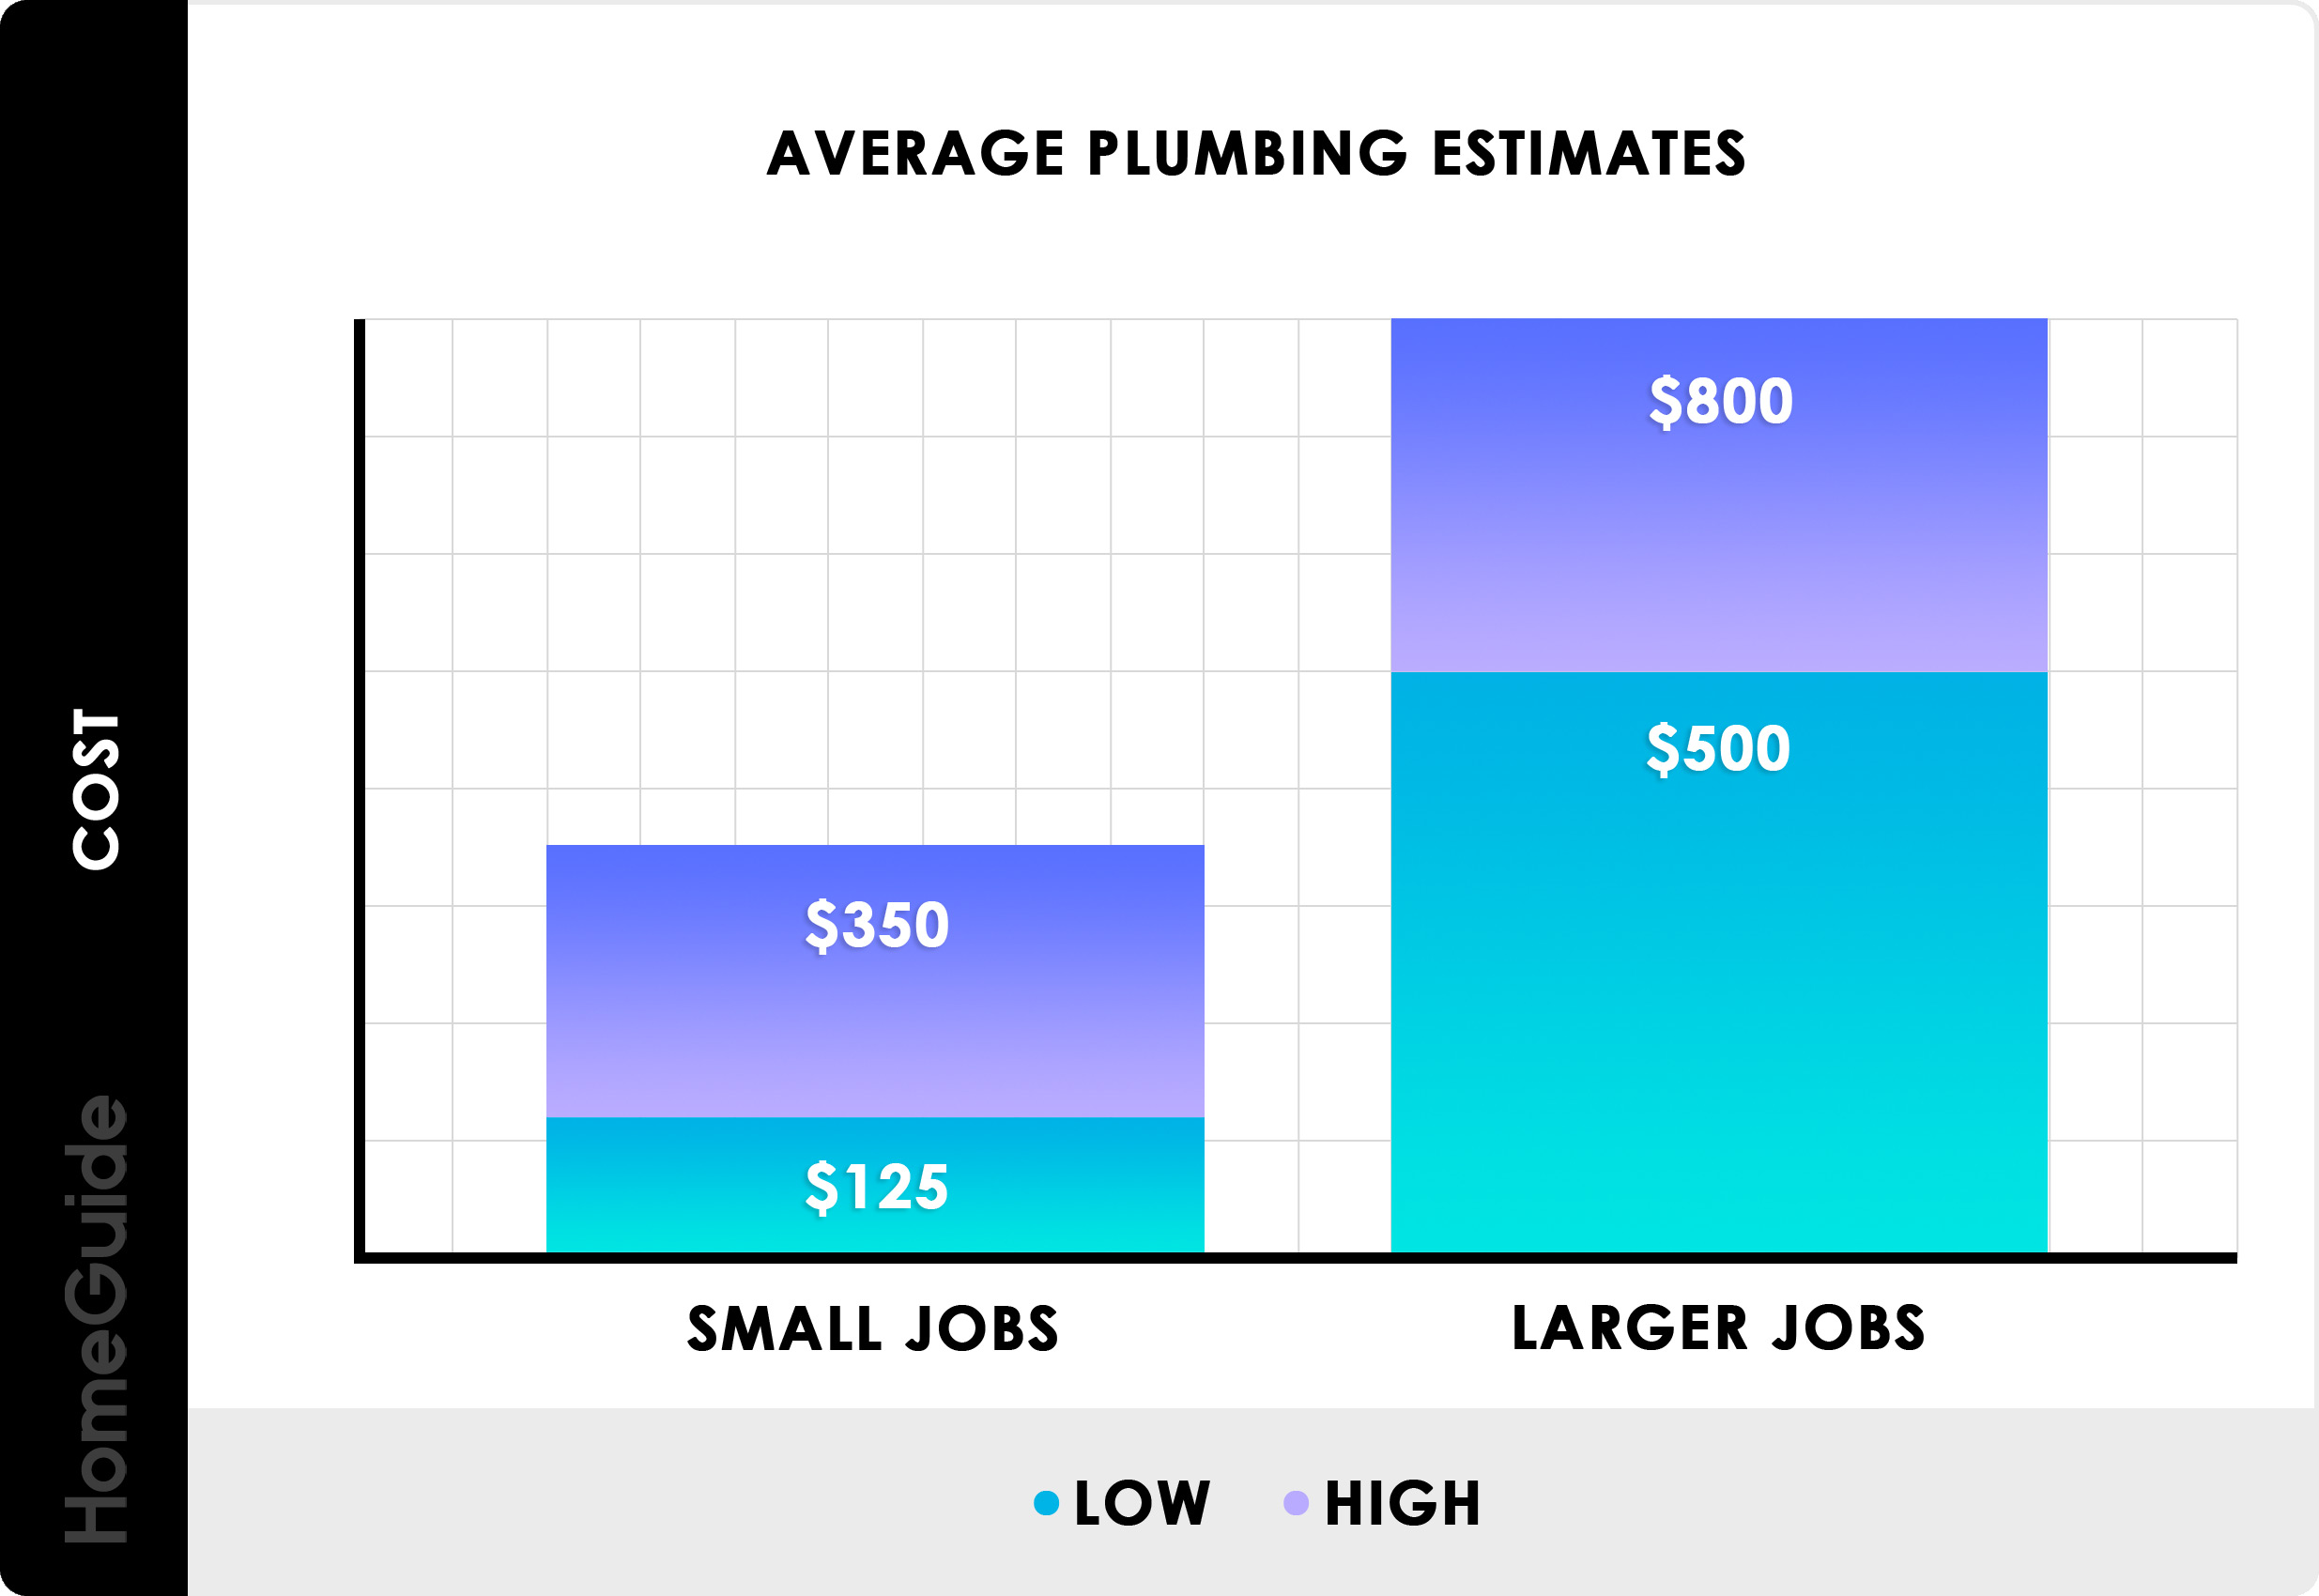 2020 Plumbing Cost Estimates Average Leaks Pipe Repairs